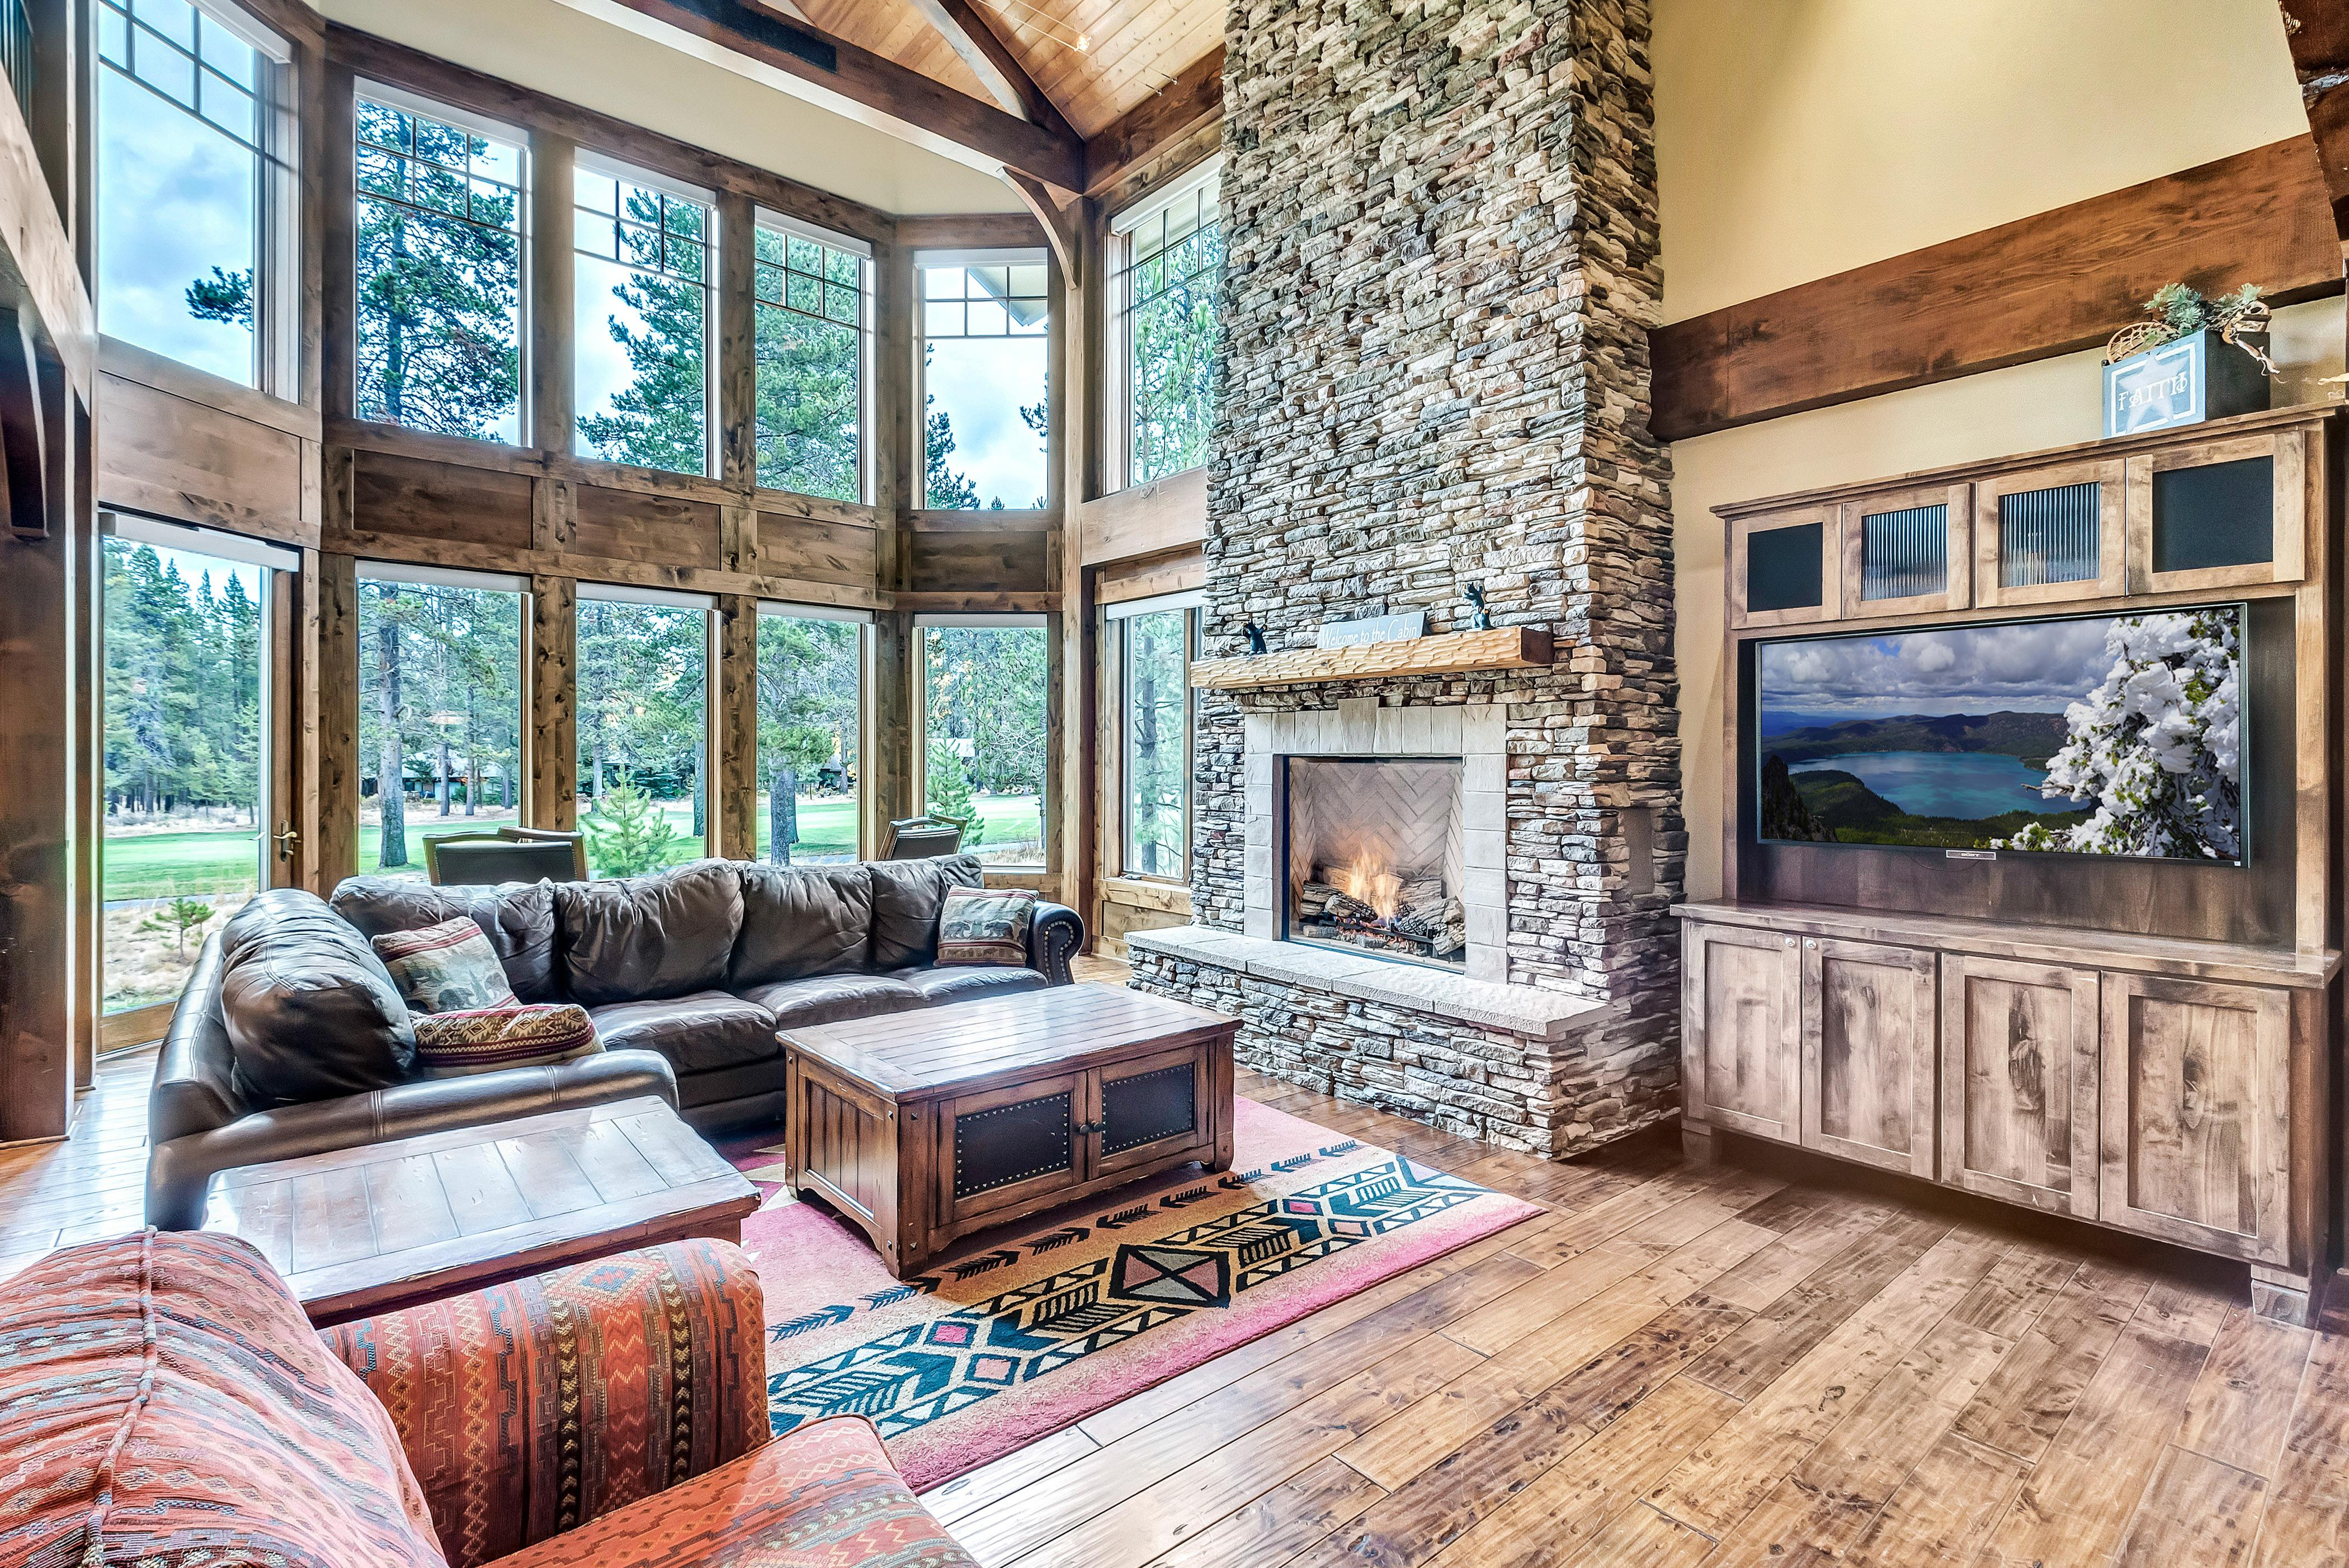 Welcome to Sunriver! Your mountain home is professionally managed by TurnKey Vacation Rentals.